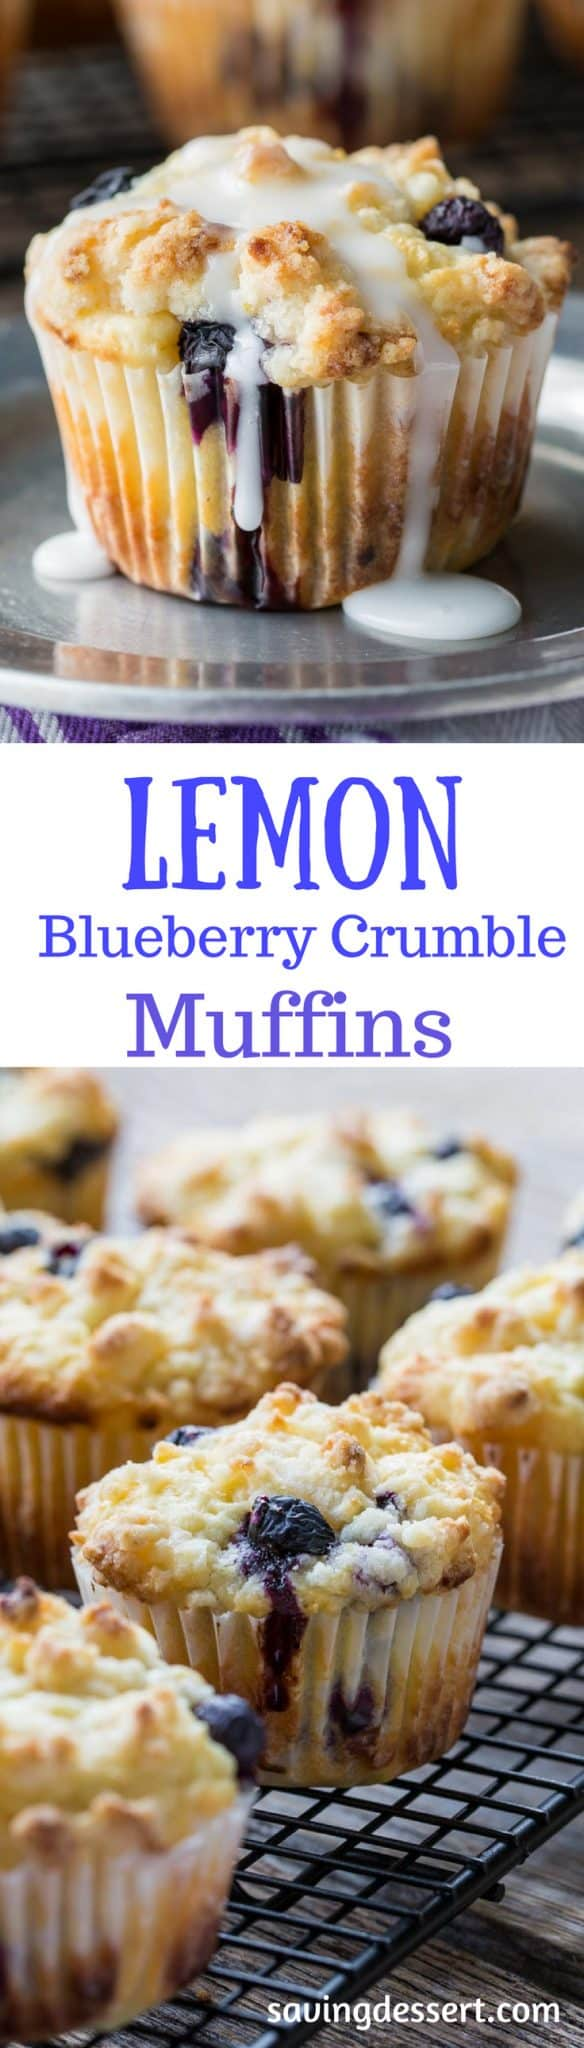 Lemon Blueberry Muffins with a Lemon Crumble Topping ~ Plump, ripe blueberries and tart lemon juice are the stars in these wonderfully moist, sour cream muffins. Not overly sweet, these muffins are terrific with or without the bright lemon glaze. www.savingdessert.com